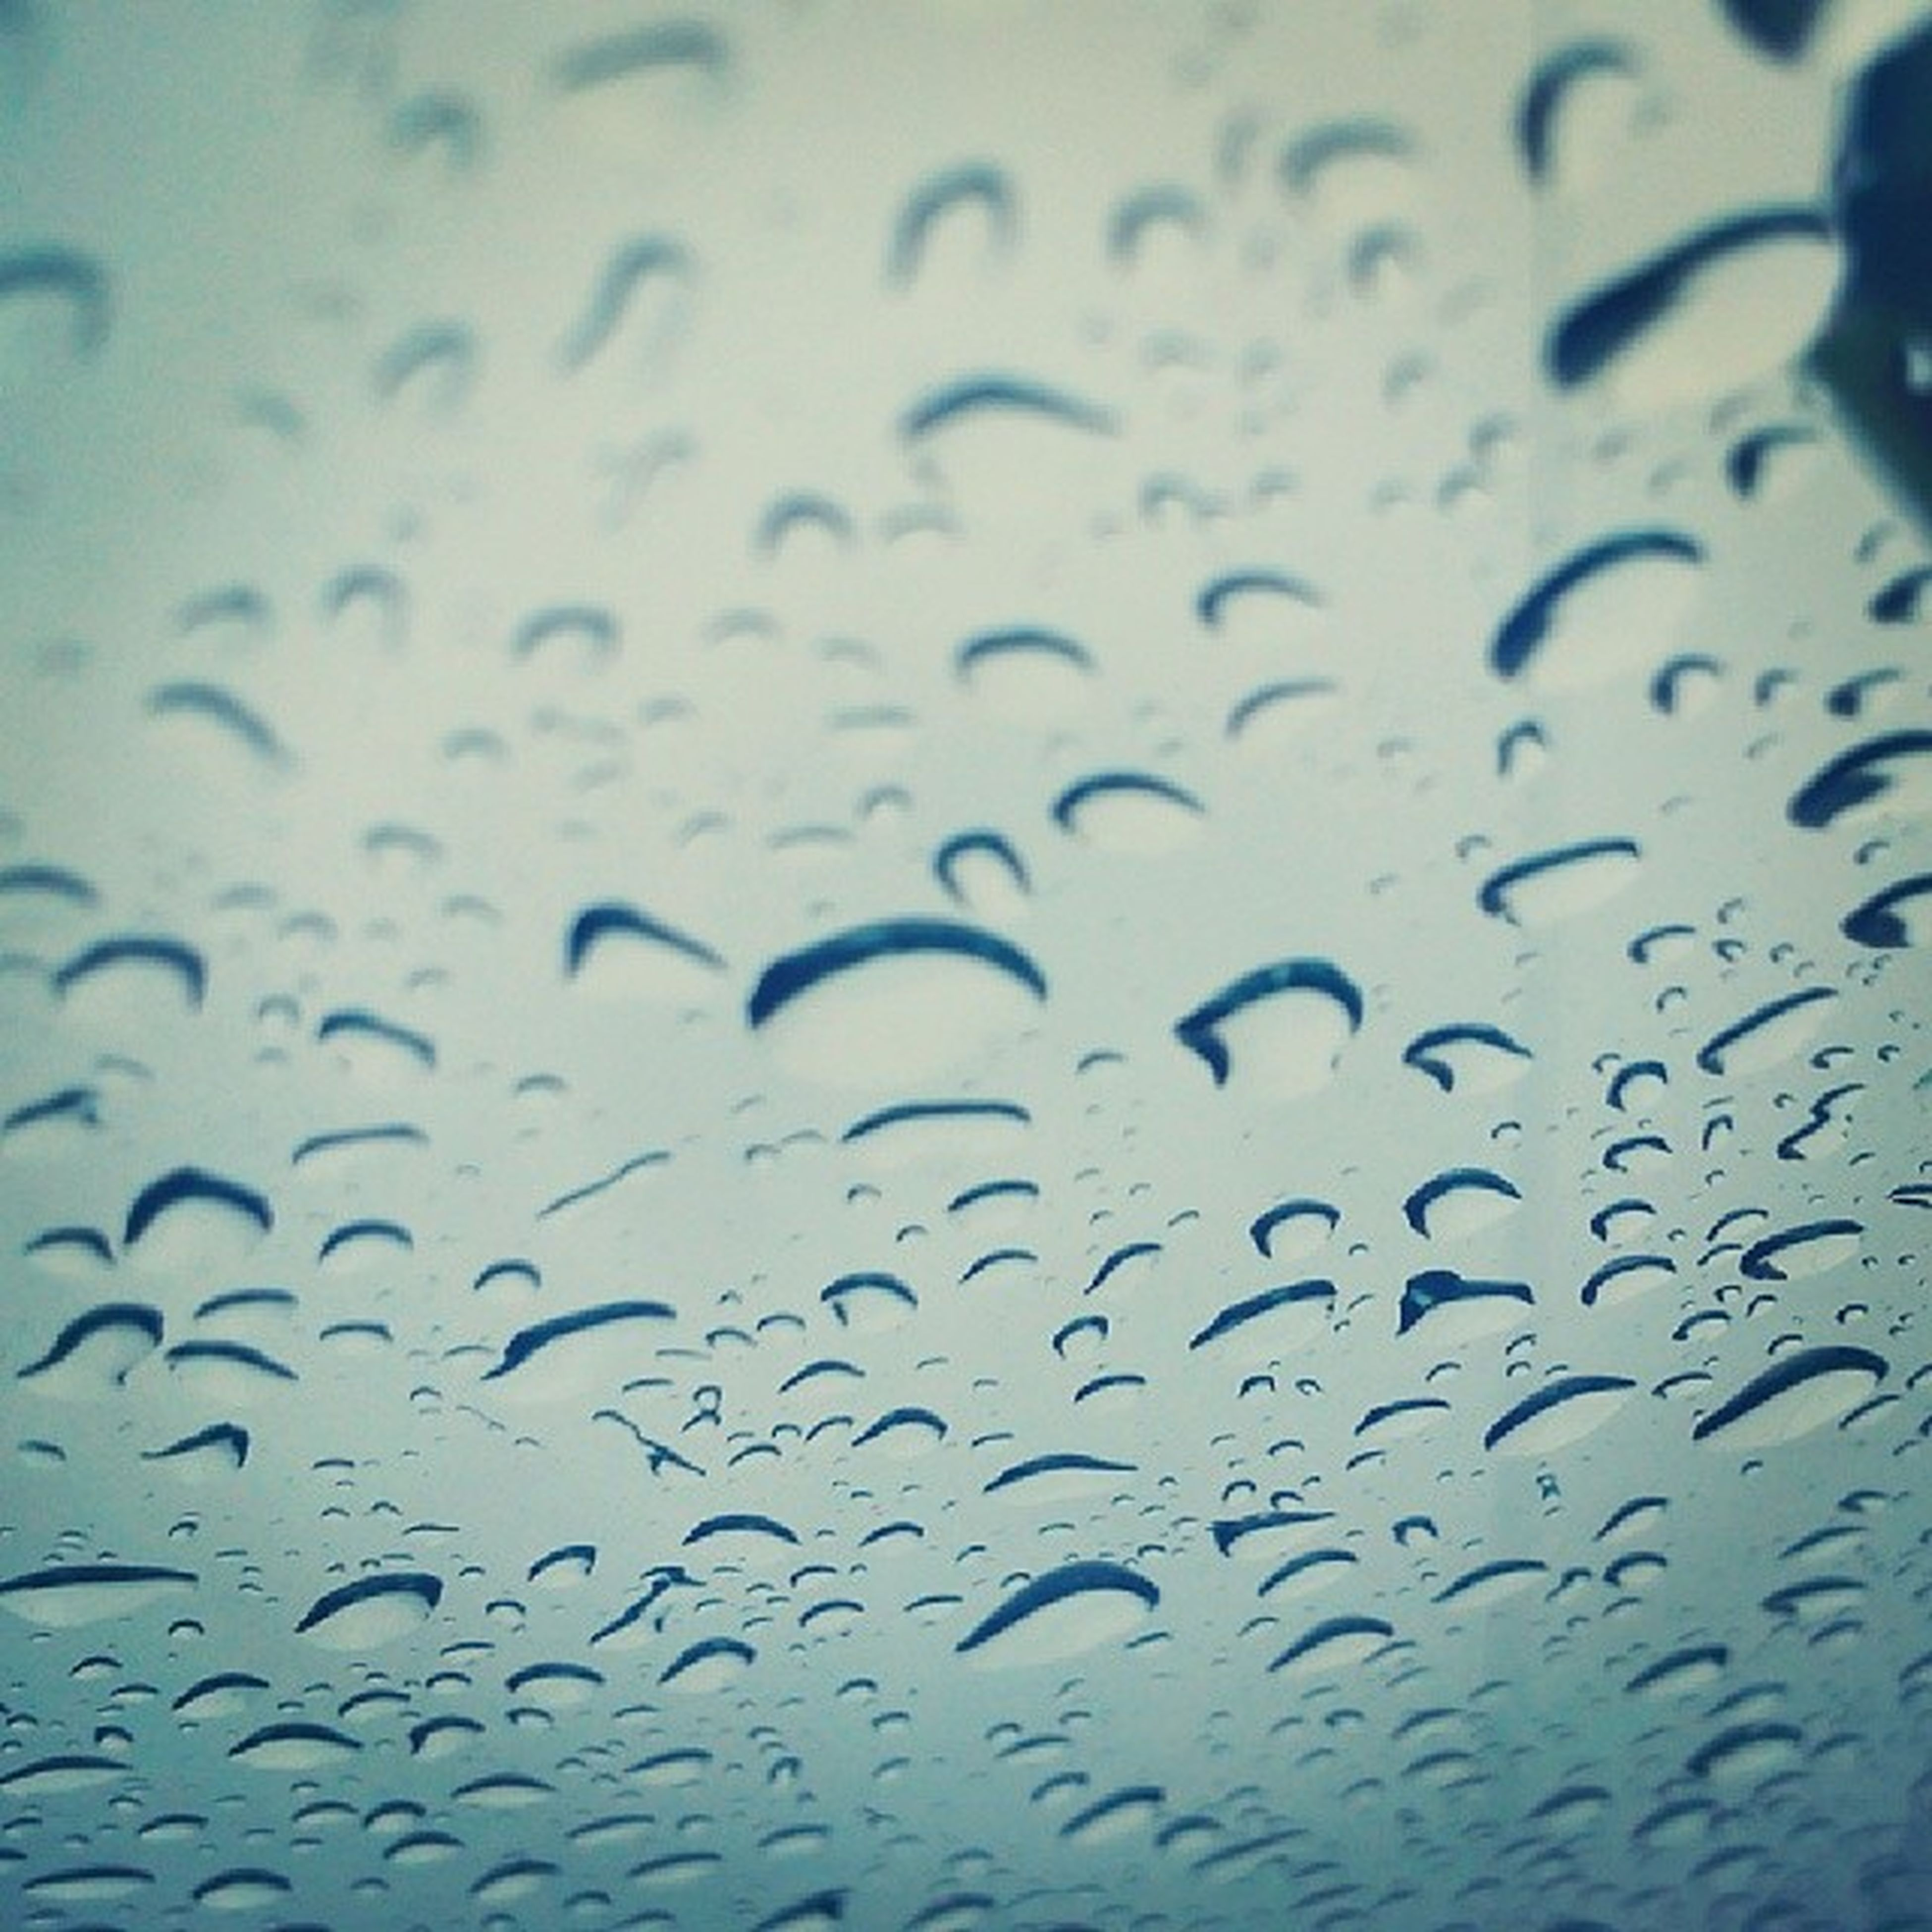 drop, full frame, backgrounds, wet, water, indoors, window, rain, raindrop, glass - material, transparent, close-up, weather, pattern, season, glass, focus on foreground, no people, detail, sky